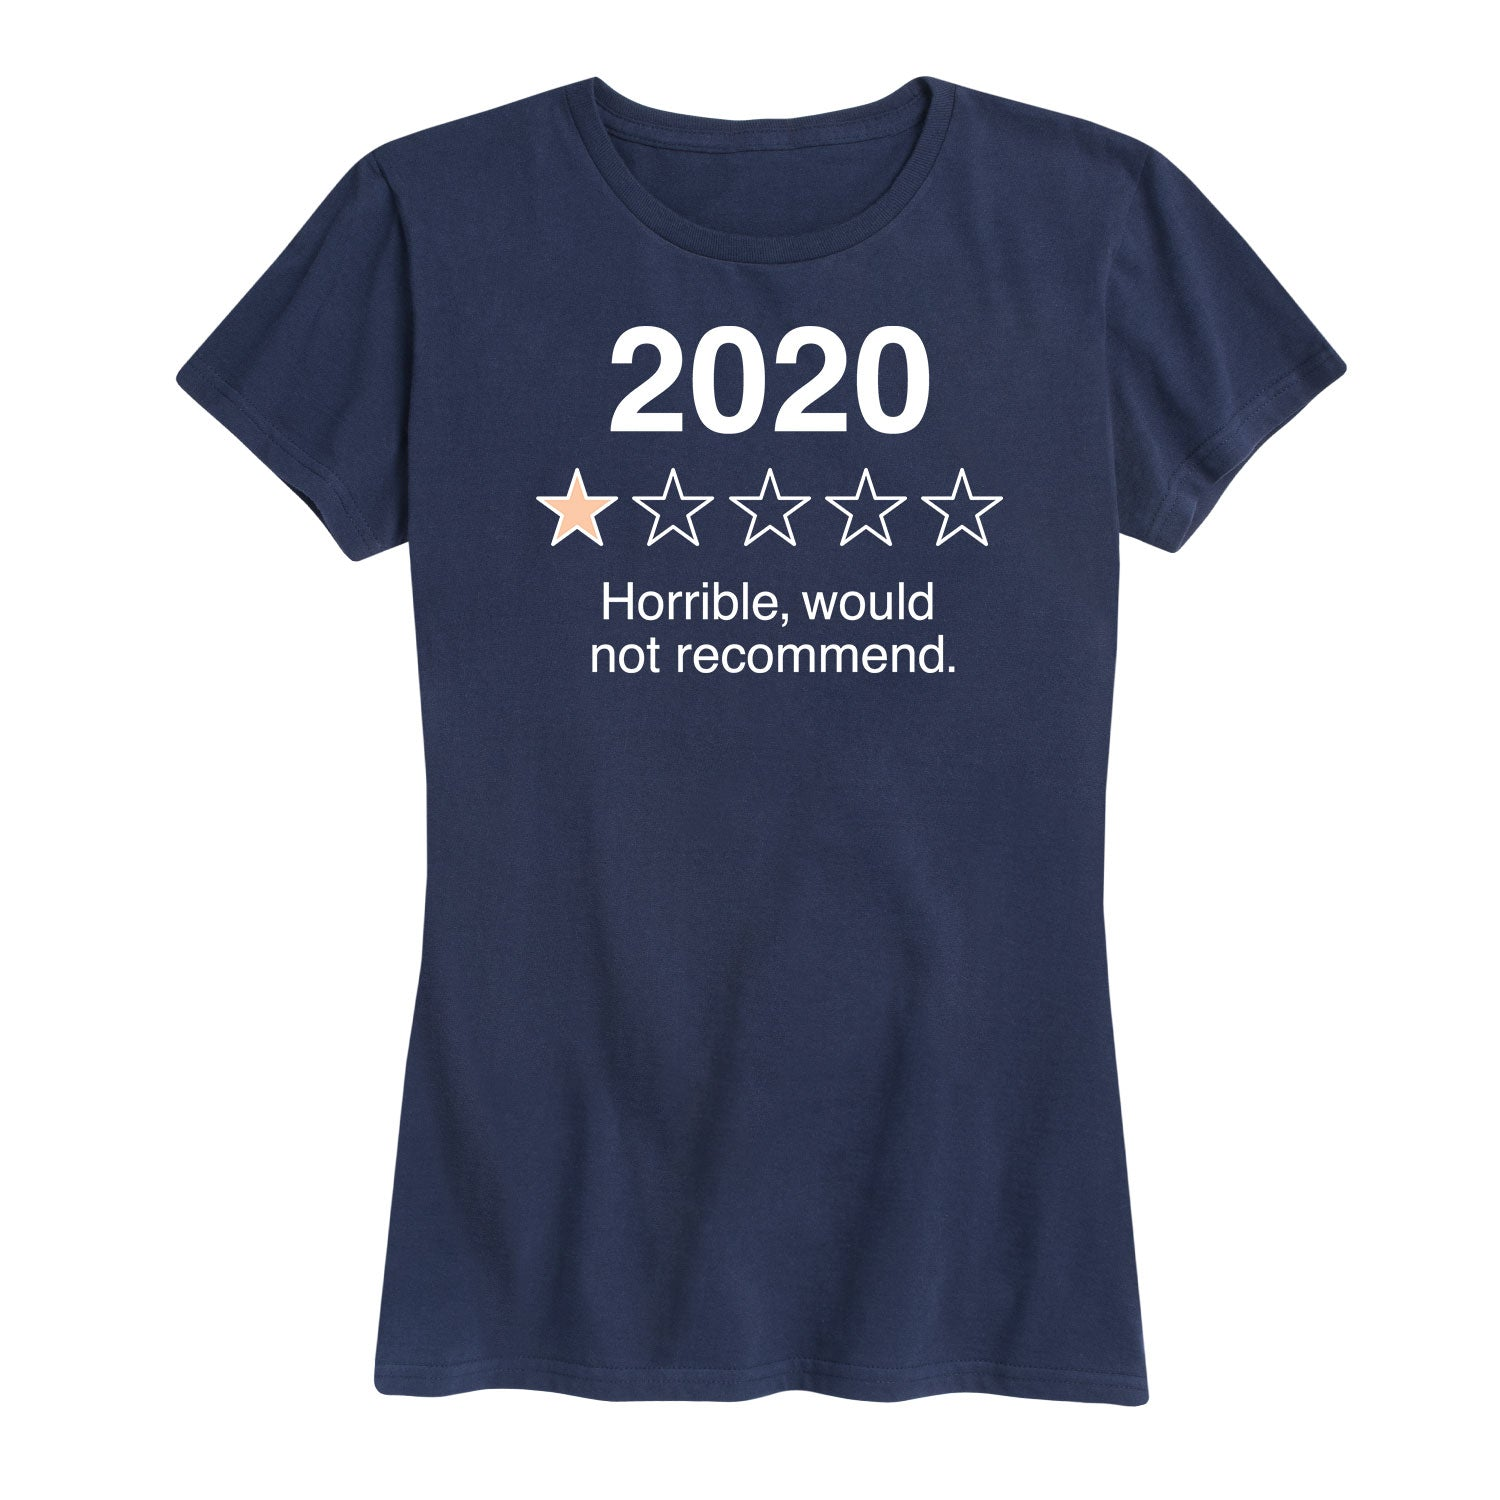 2020 Would Not Recommend - Women's Short Sleeve T-Shirt